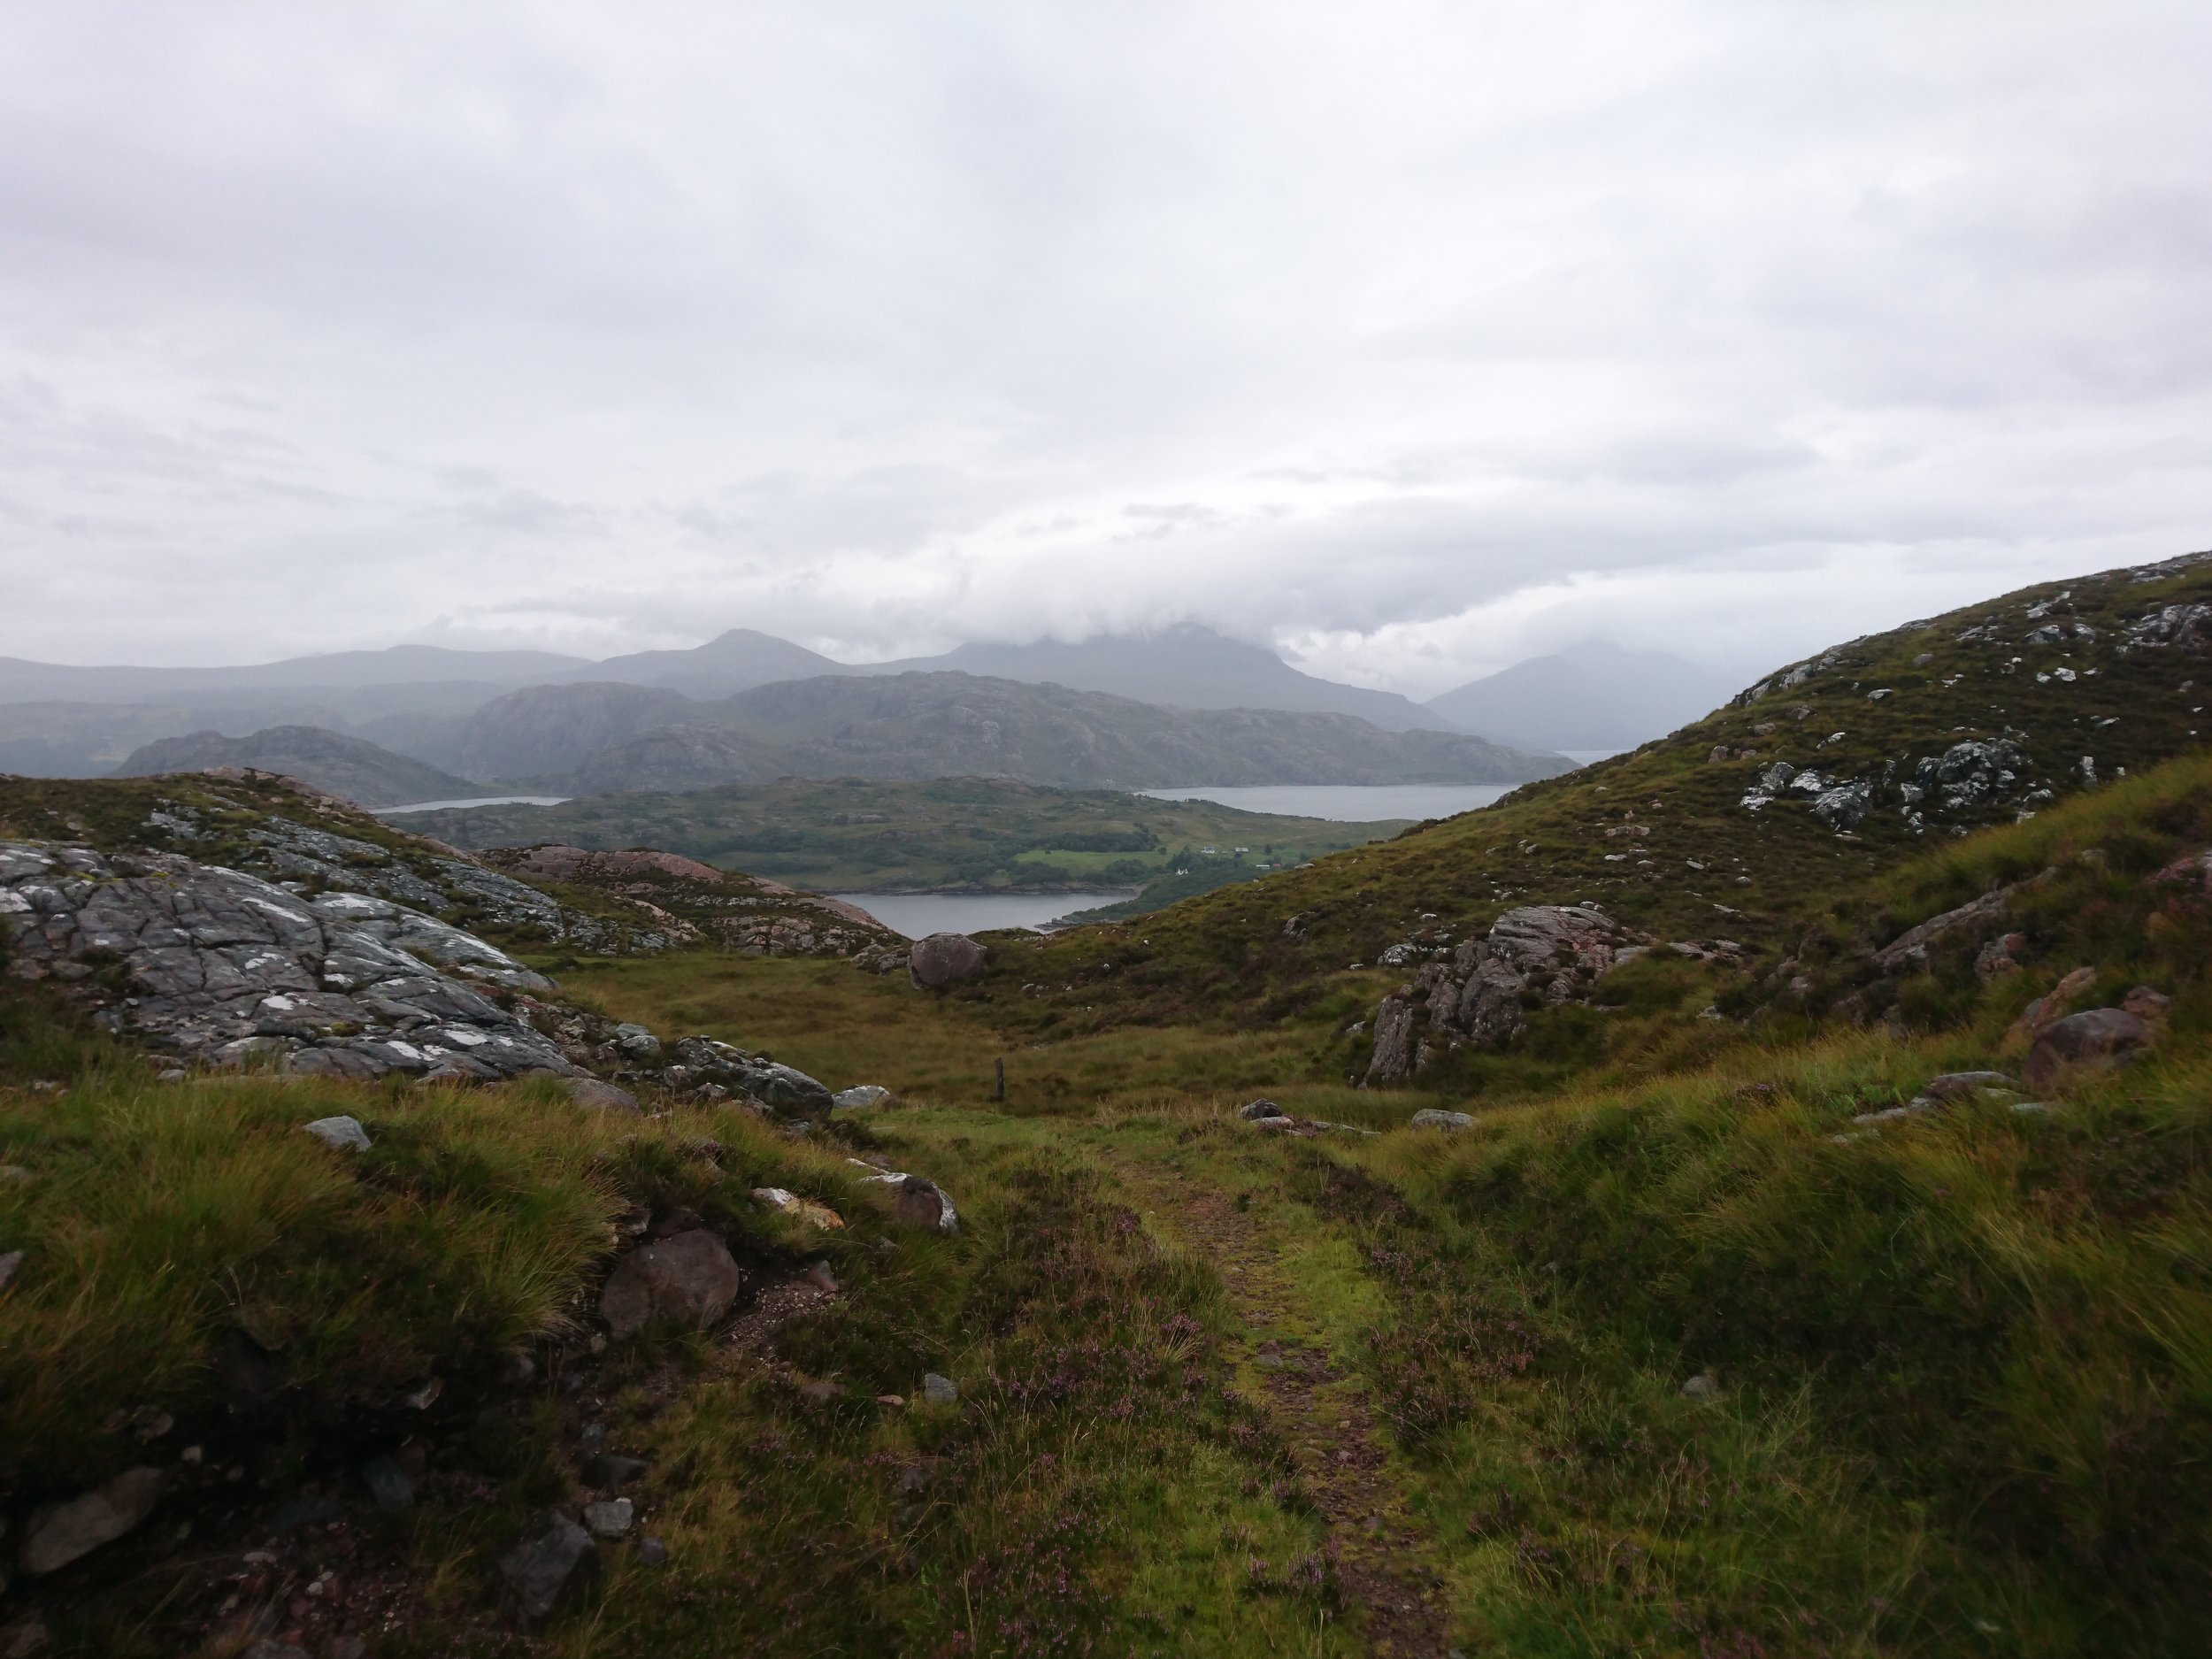 Looking forward from A'Bhainlir